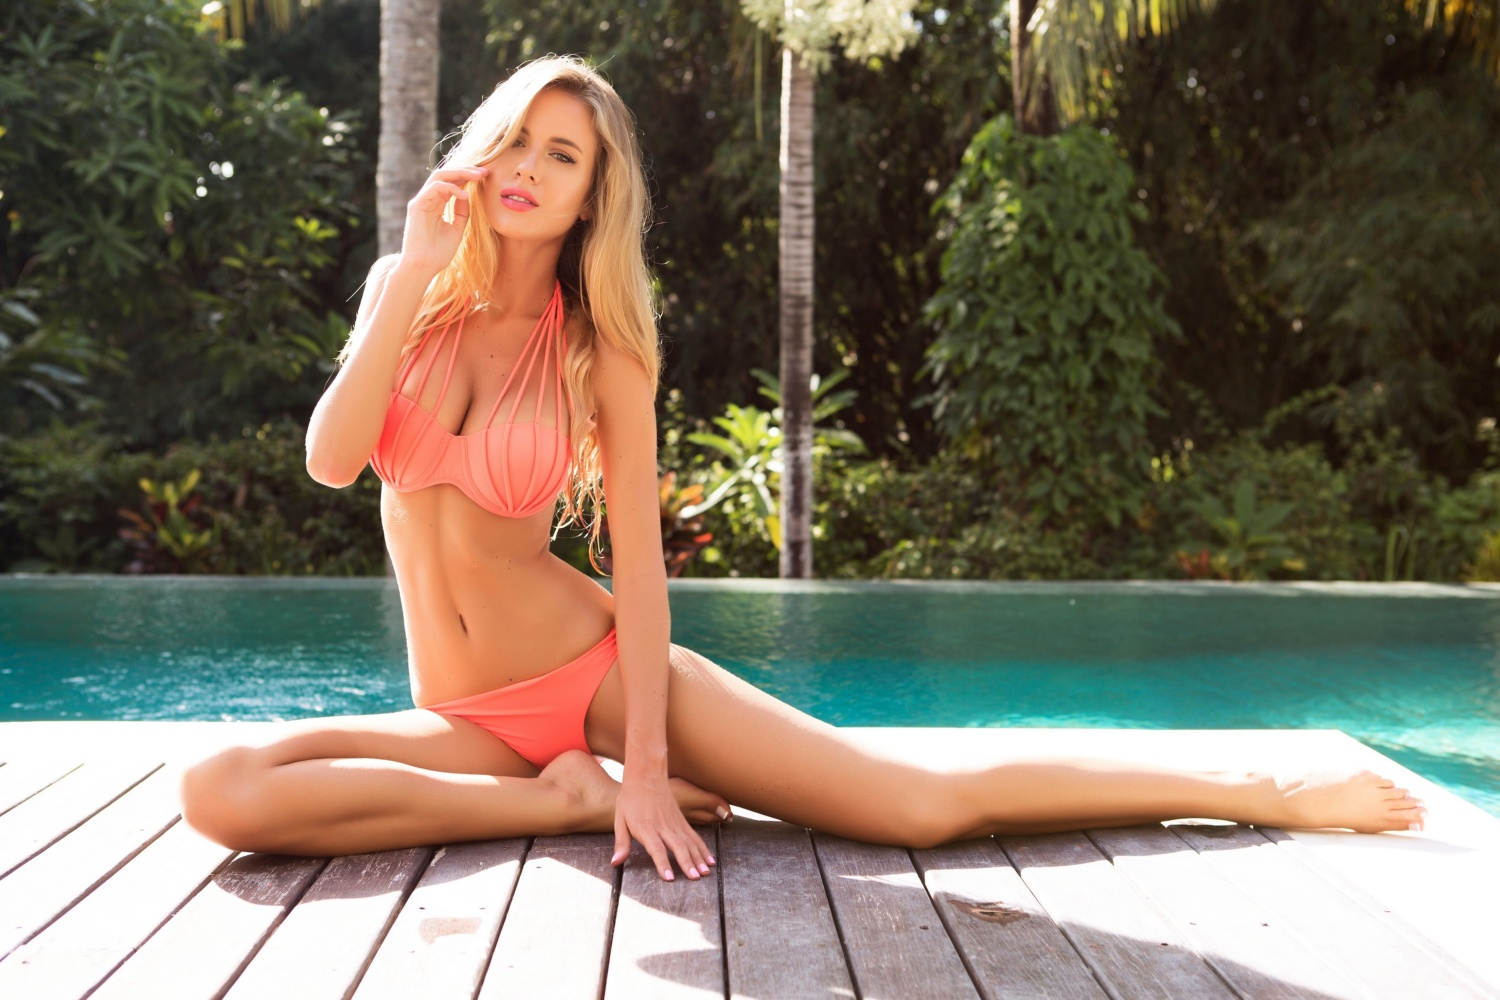 Fitness Model Renee Somerfield's Best 25 Motivational Instagram Pics!